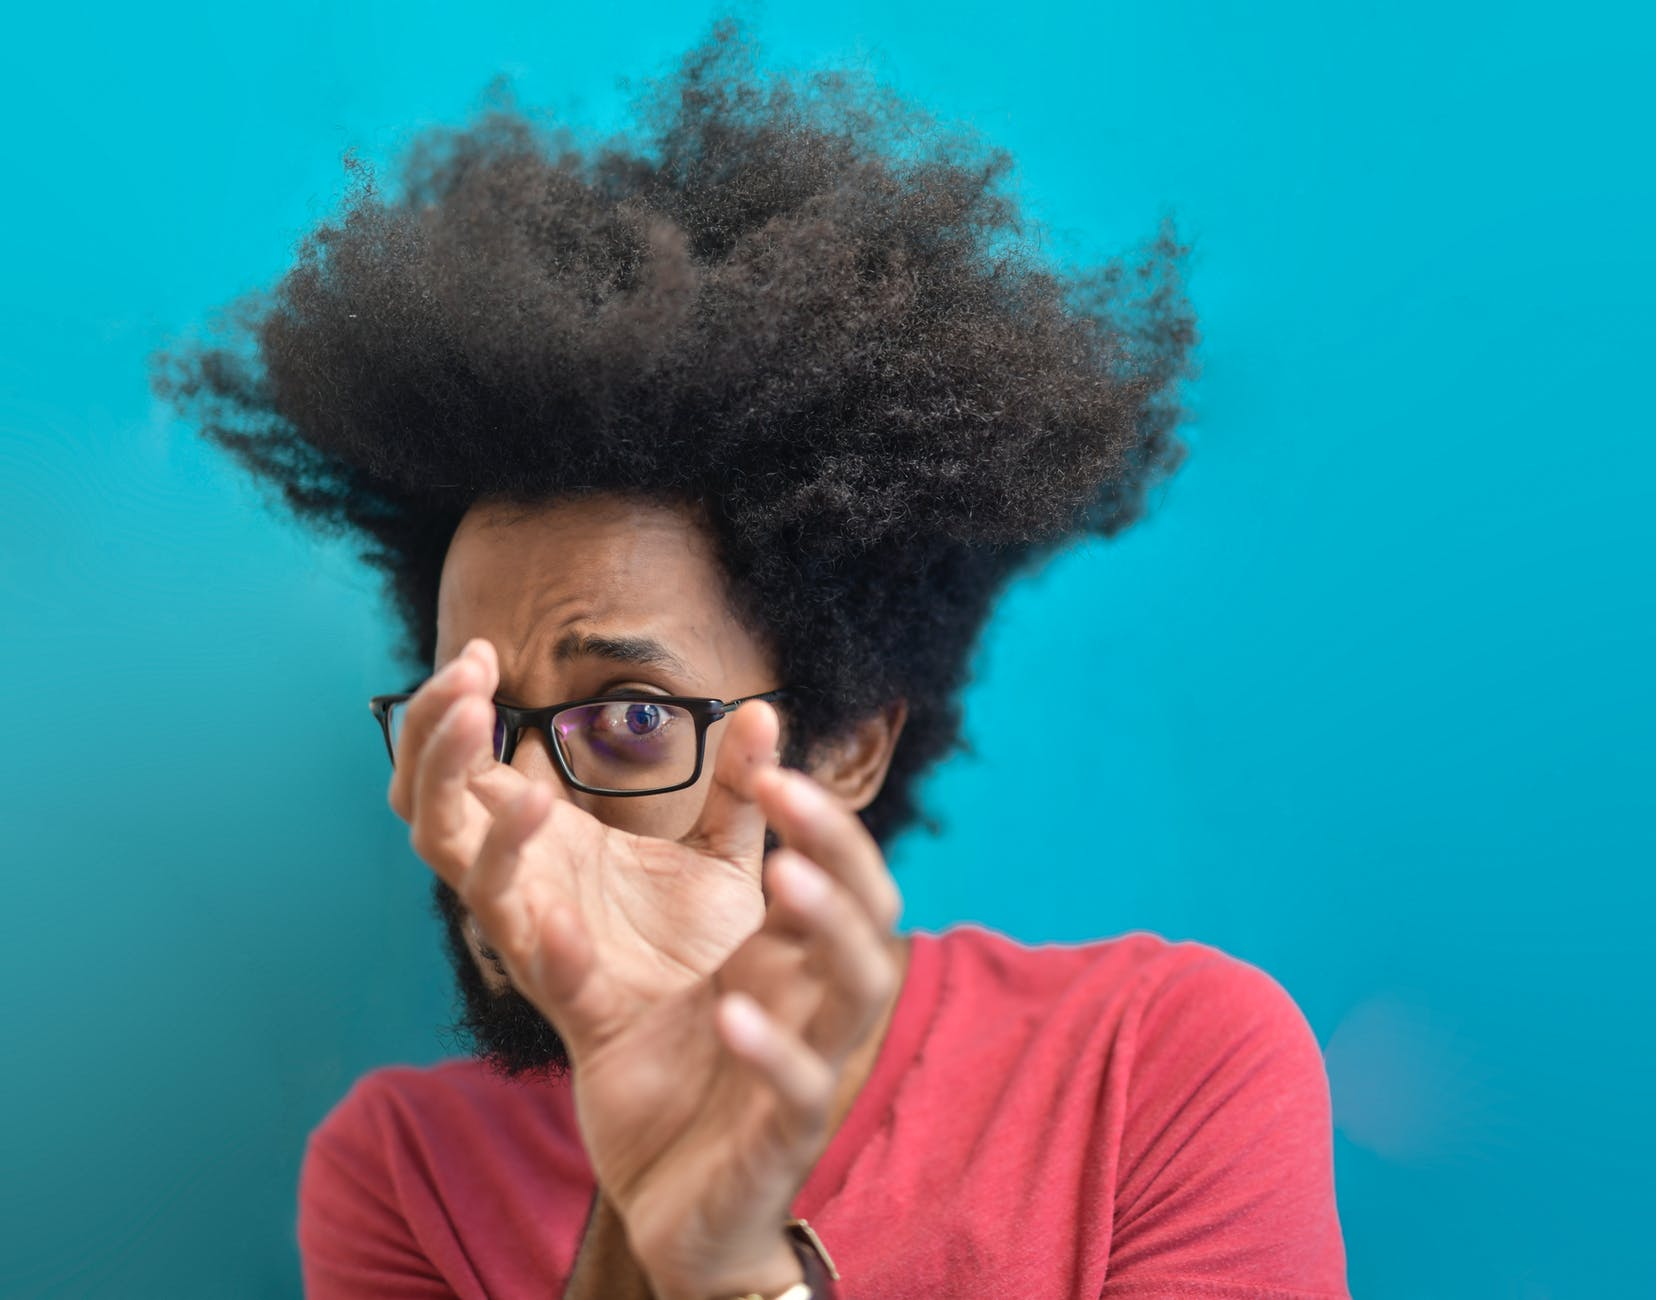 scared young ethnic man looking through hands on blue background in studio